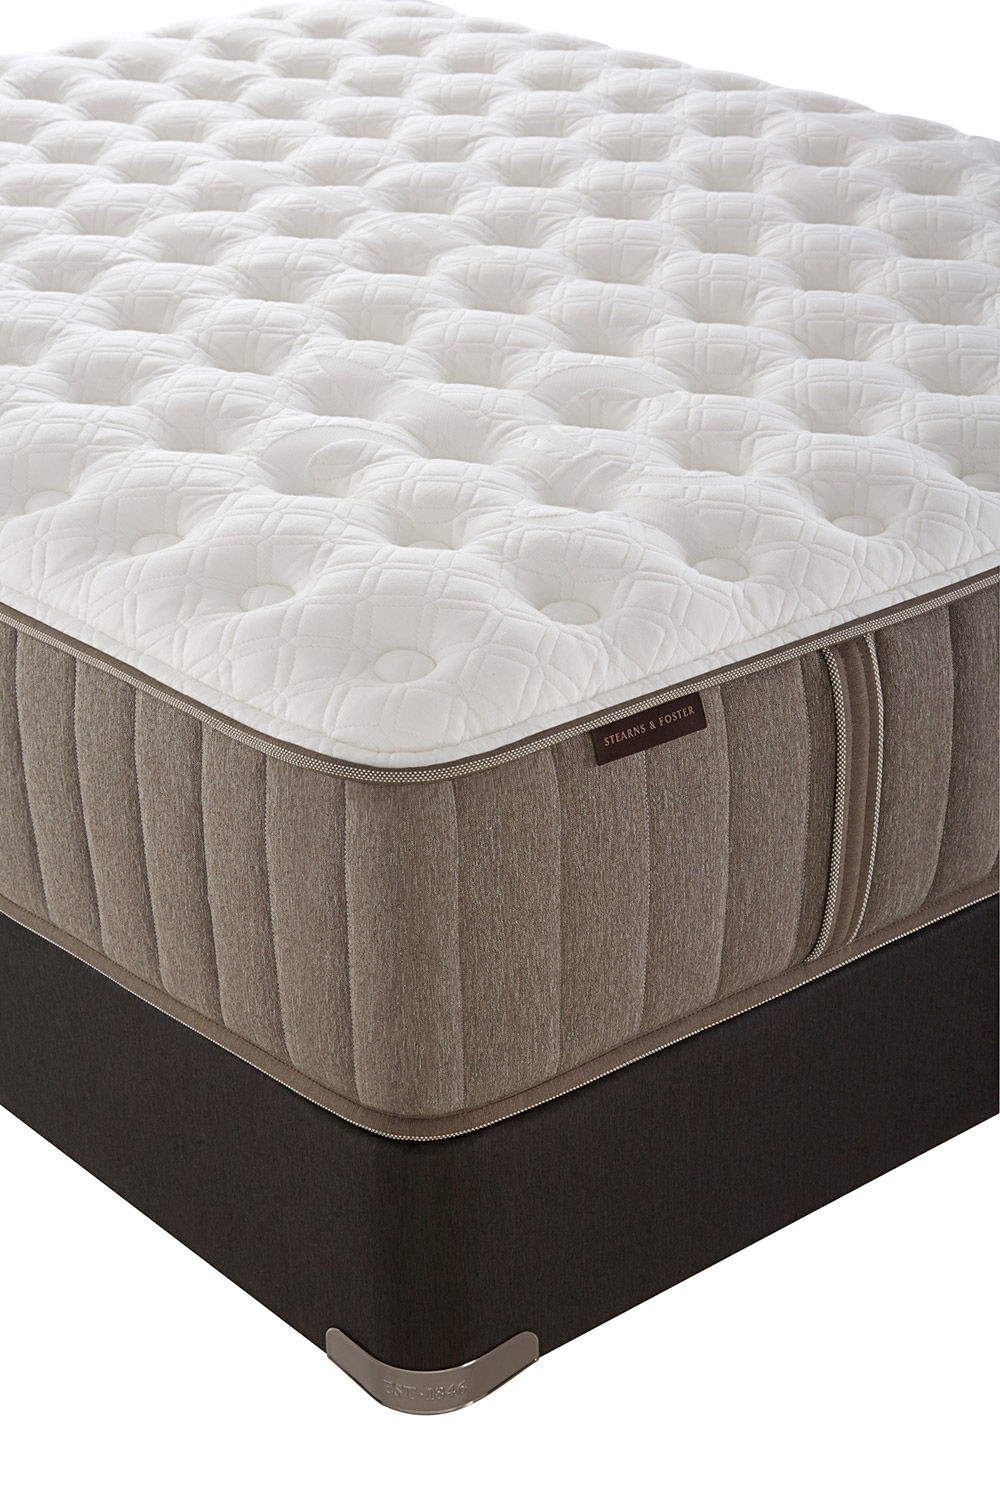 Picture of Stearns & Foster Estate Queen Scarborough Firm TighTop Mattress Only